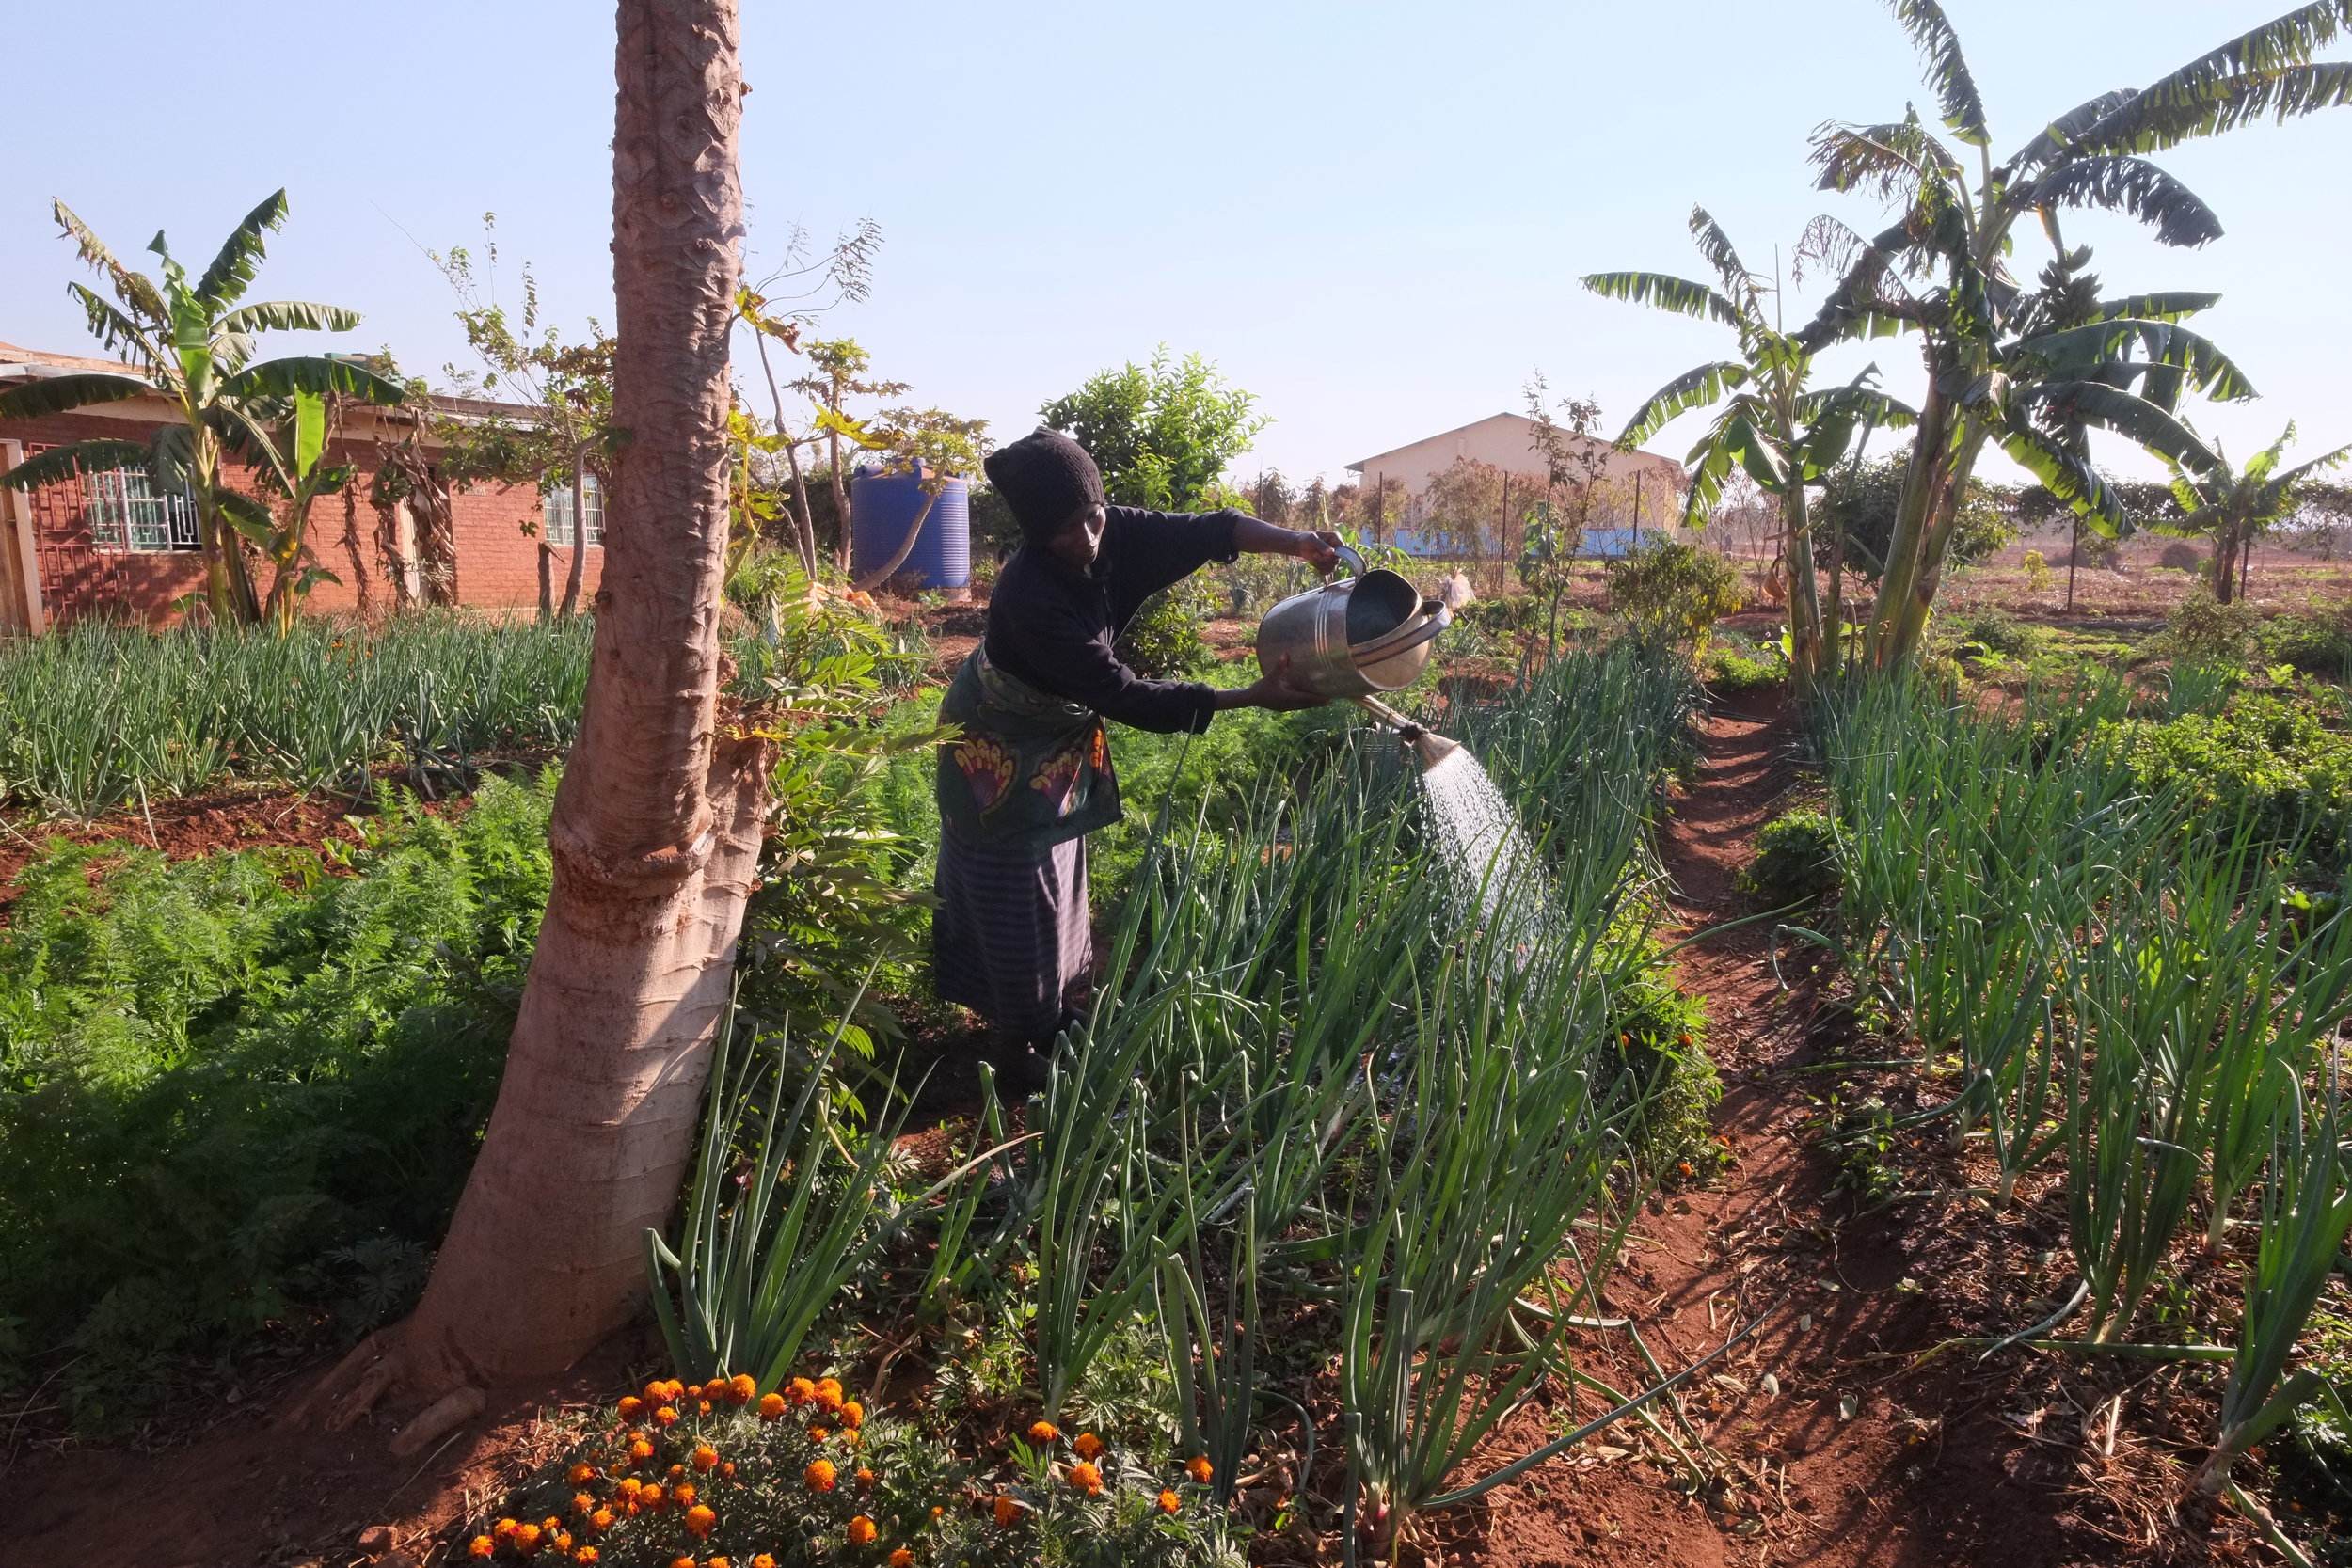 Jean tends the camp's veggie garden. She sells produce at local markets.